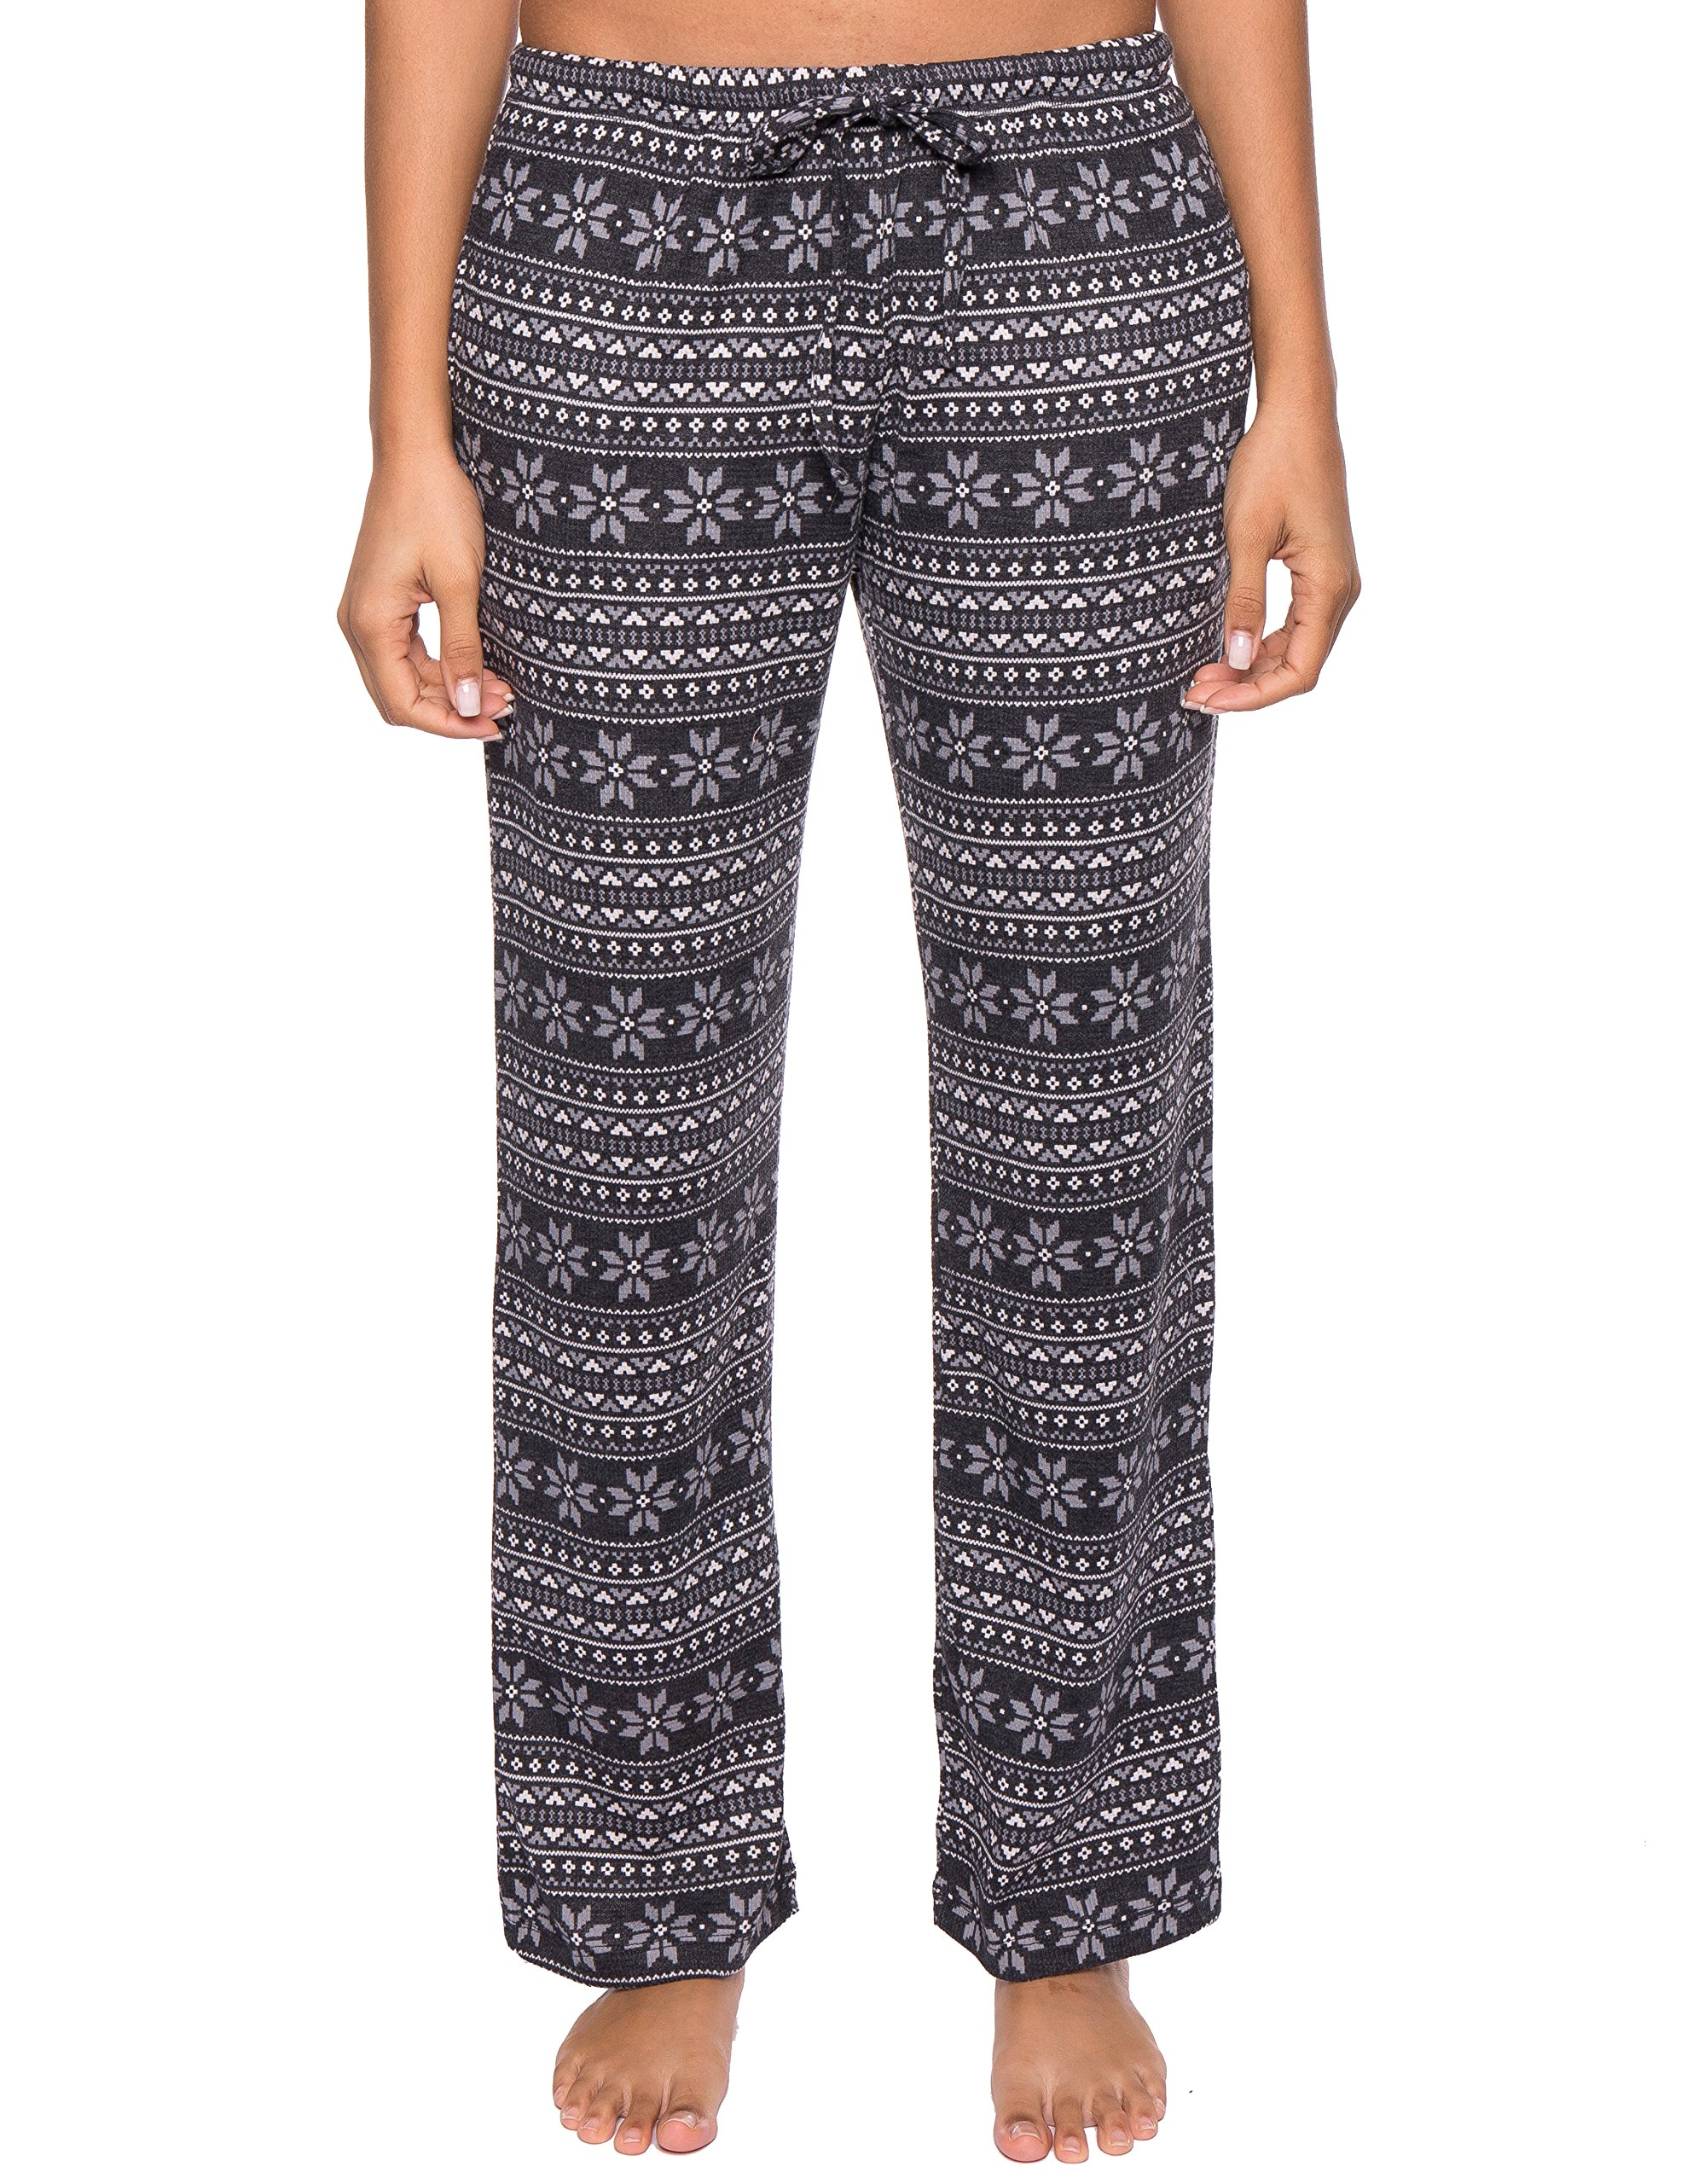 Noble Mount Thermal Pajama Pants for Women - Snowflake Bands - Navy/Grey - Small